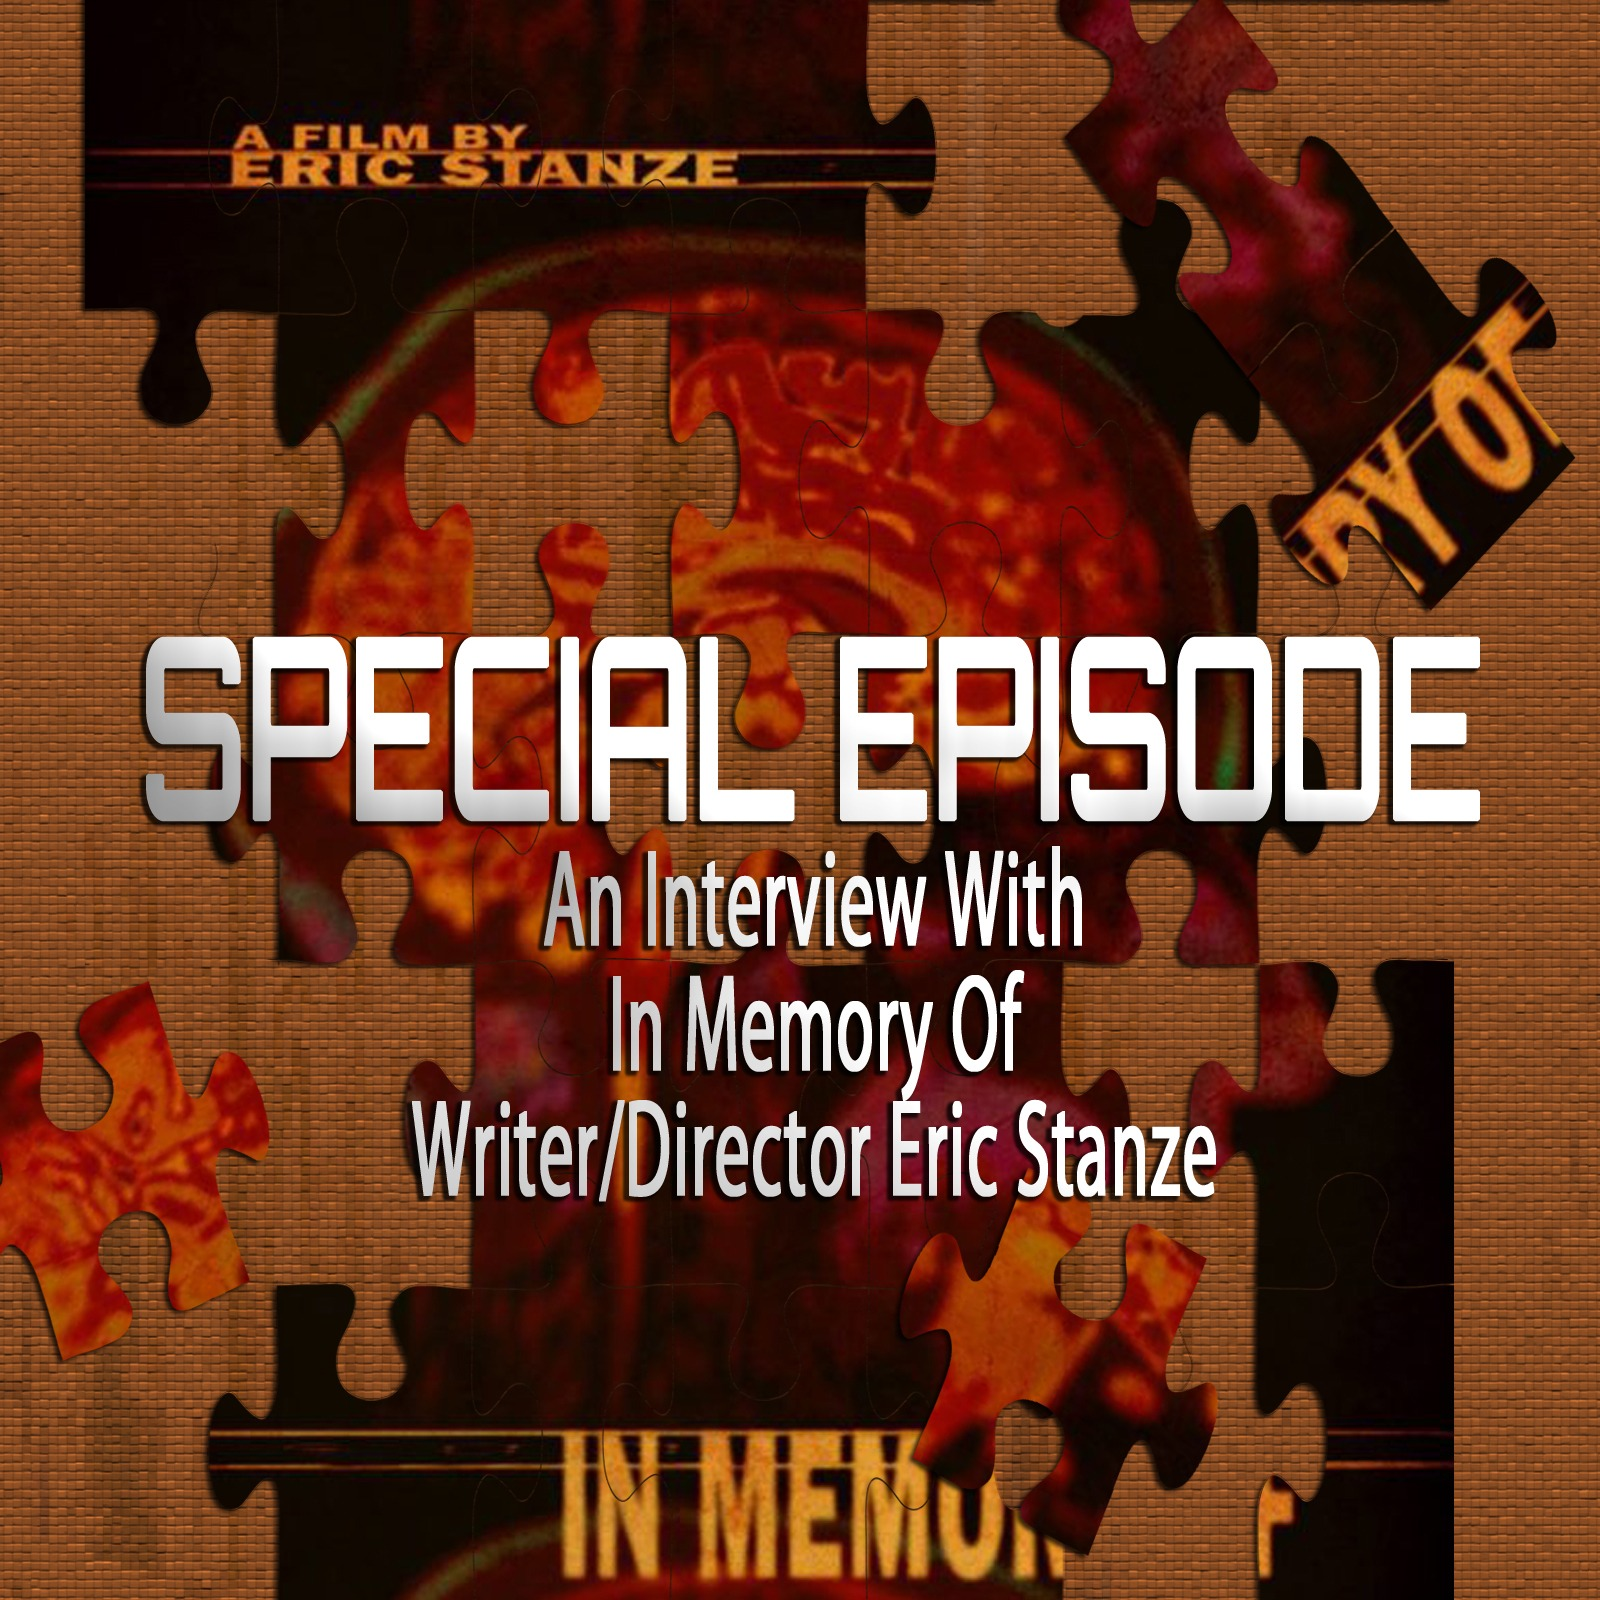 In Memory Of – Eric Stanze Interview (Special Episode)